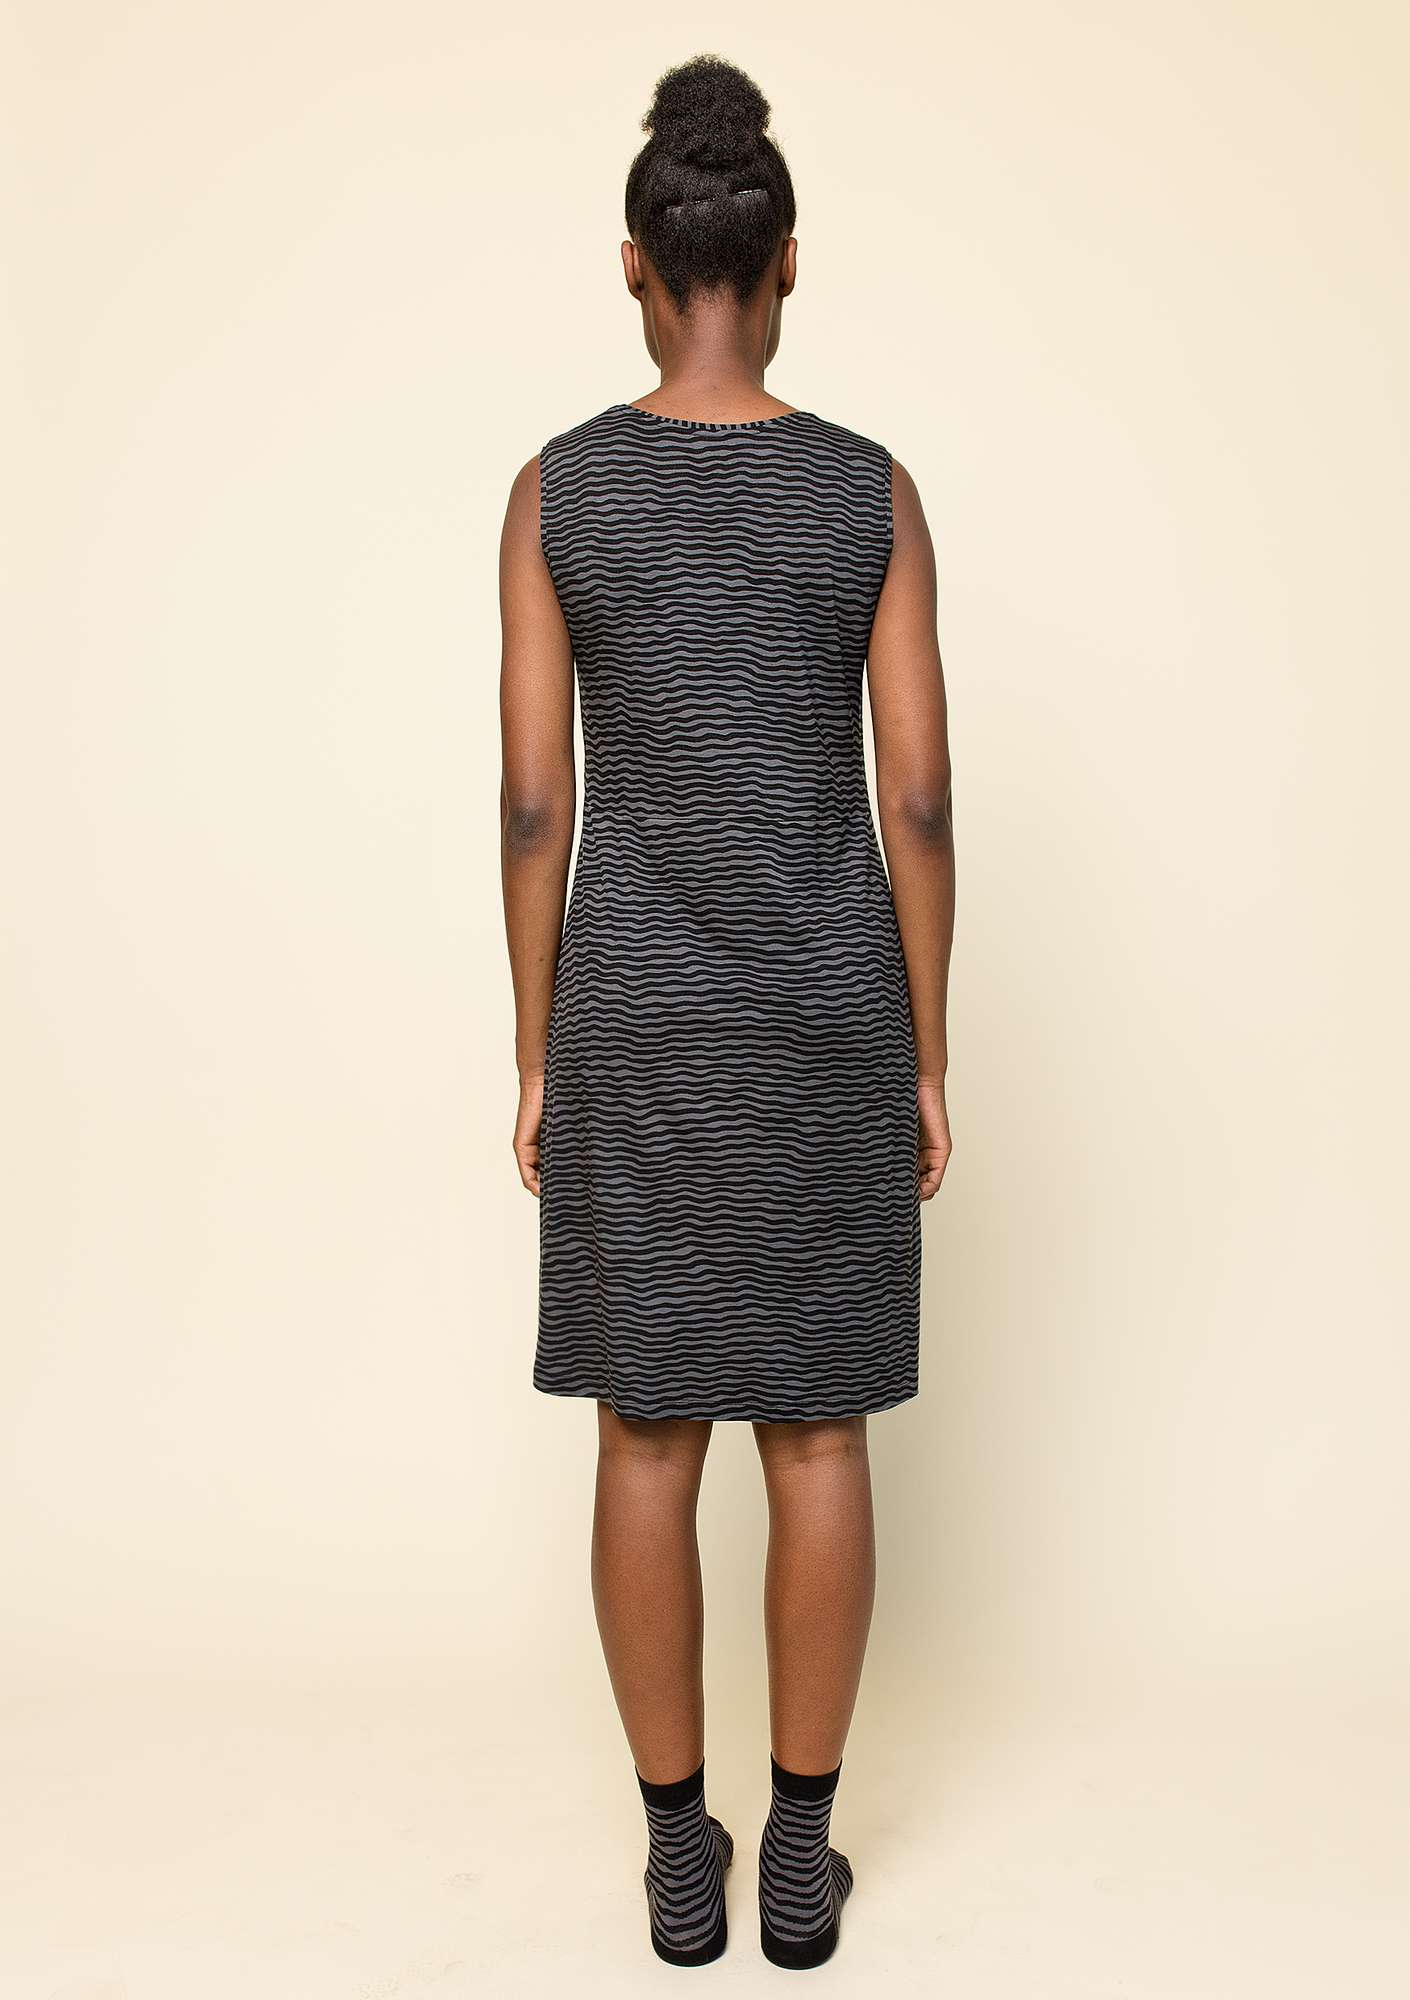 """Krusa"" dress in lyocell/spandex black/patterned"